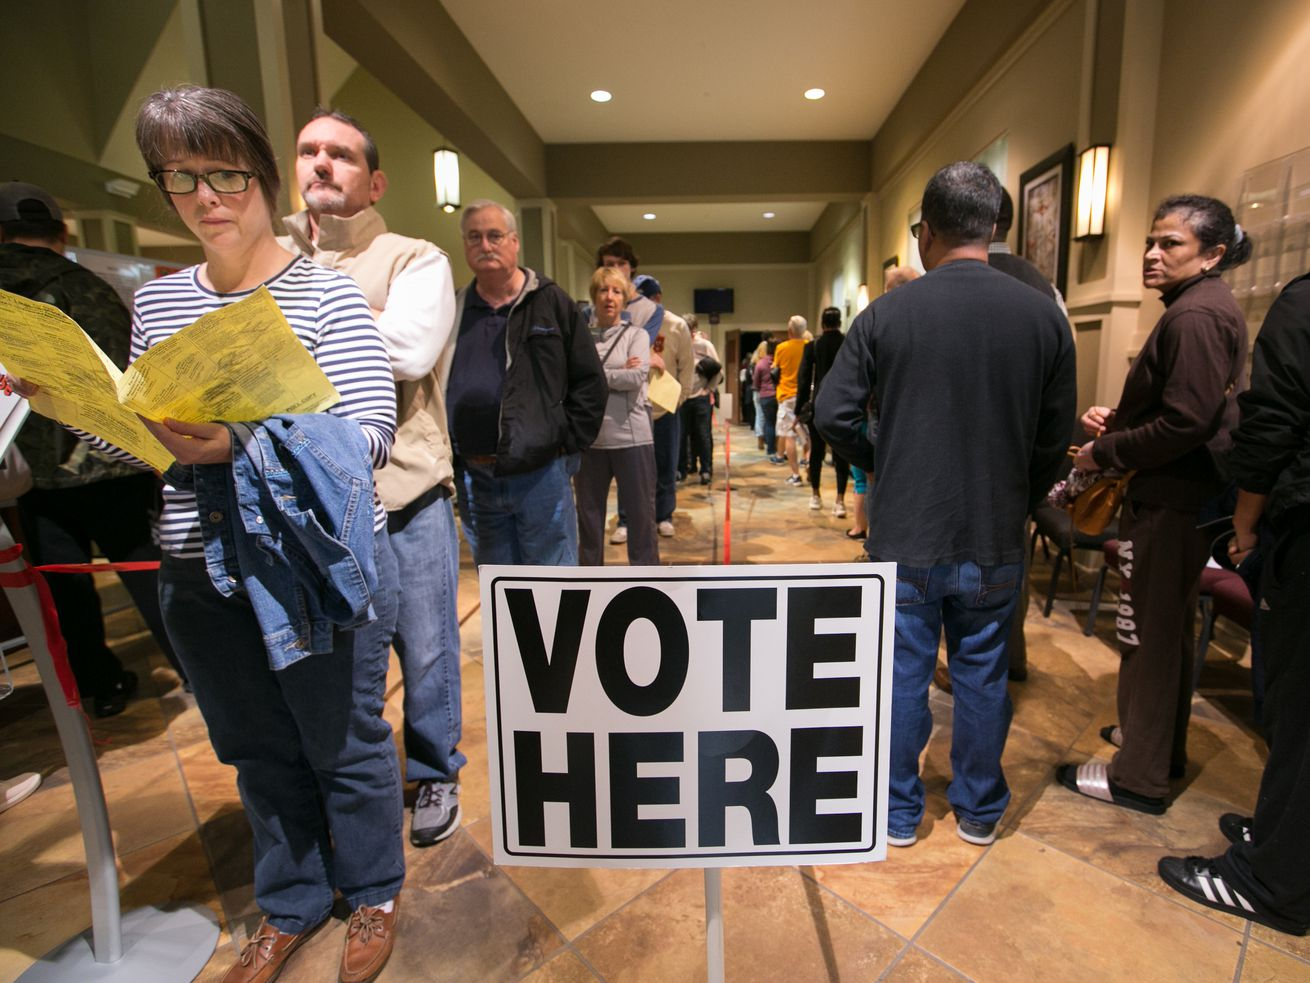 Voters line up to cast their ballots at a polling station set up at Noonday Baptist Church for the midterm elections on Nov. 6, 2018, in Marietta, Ga.